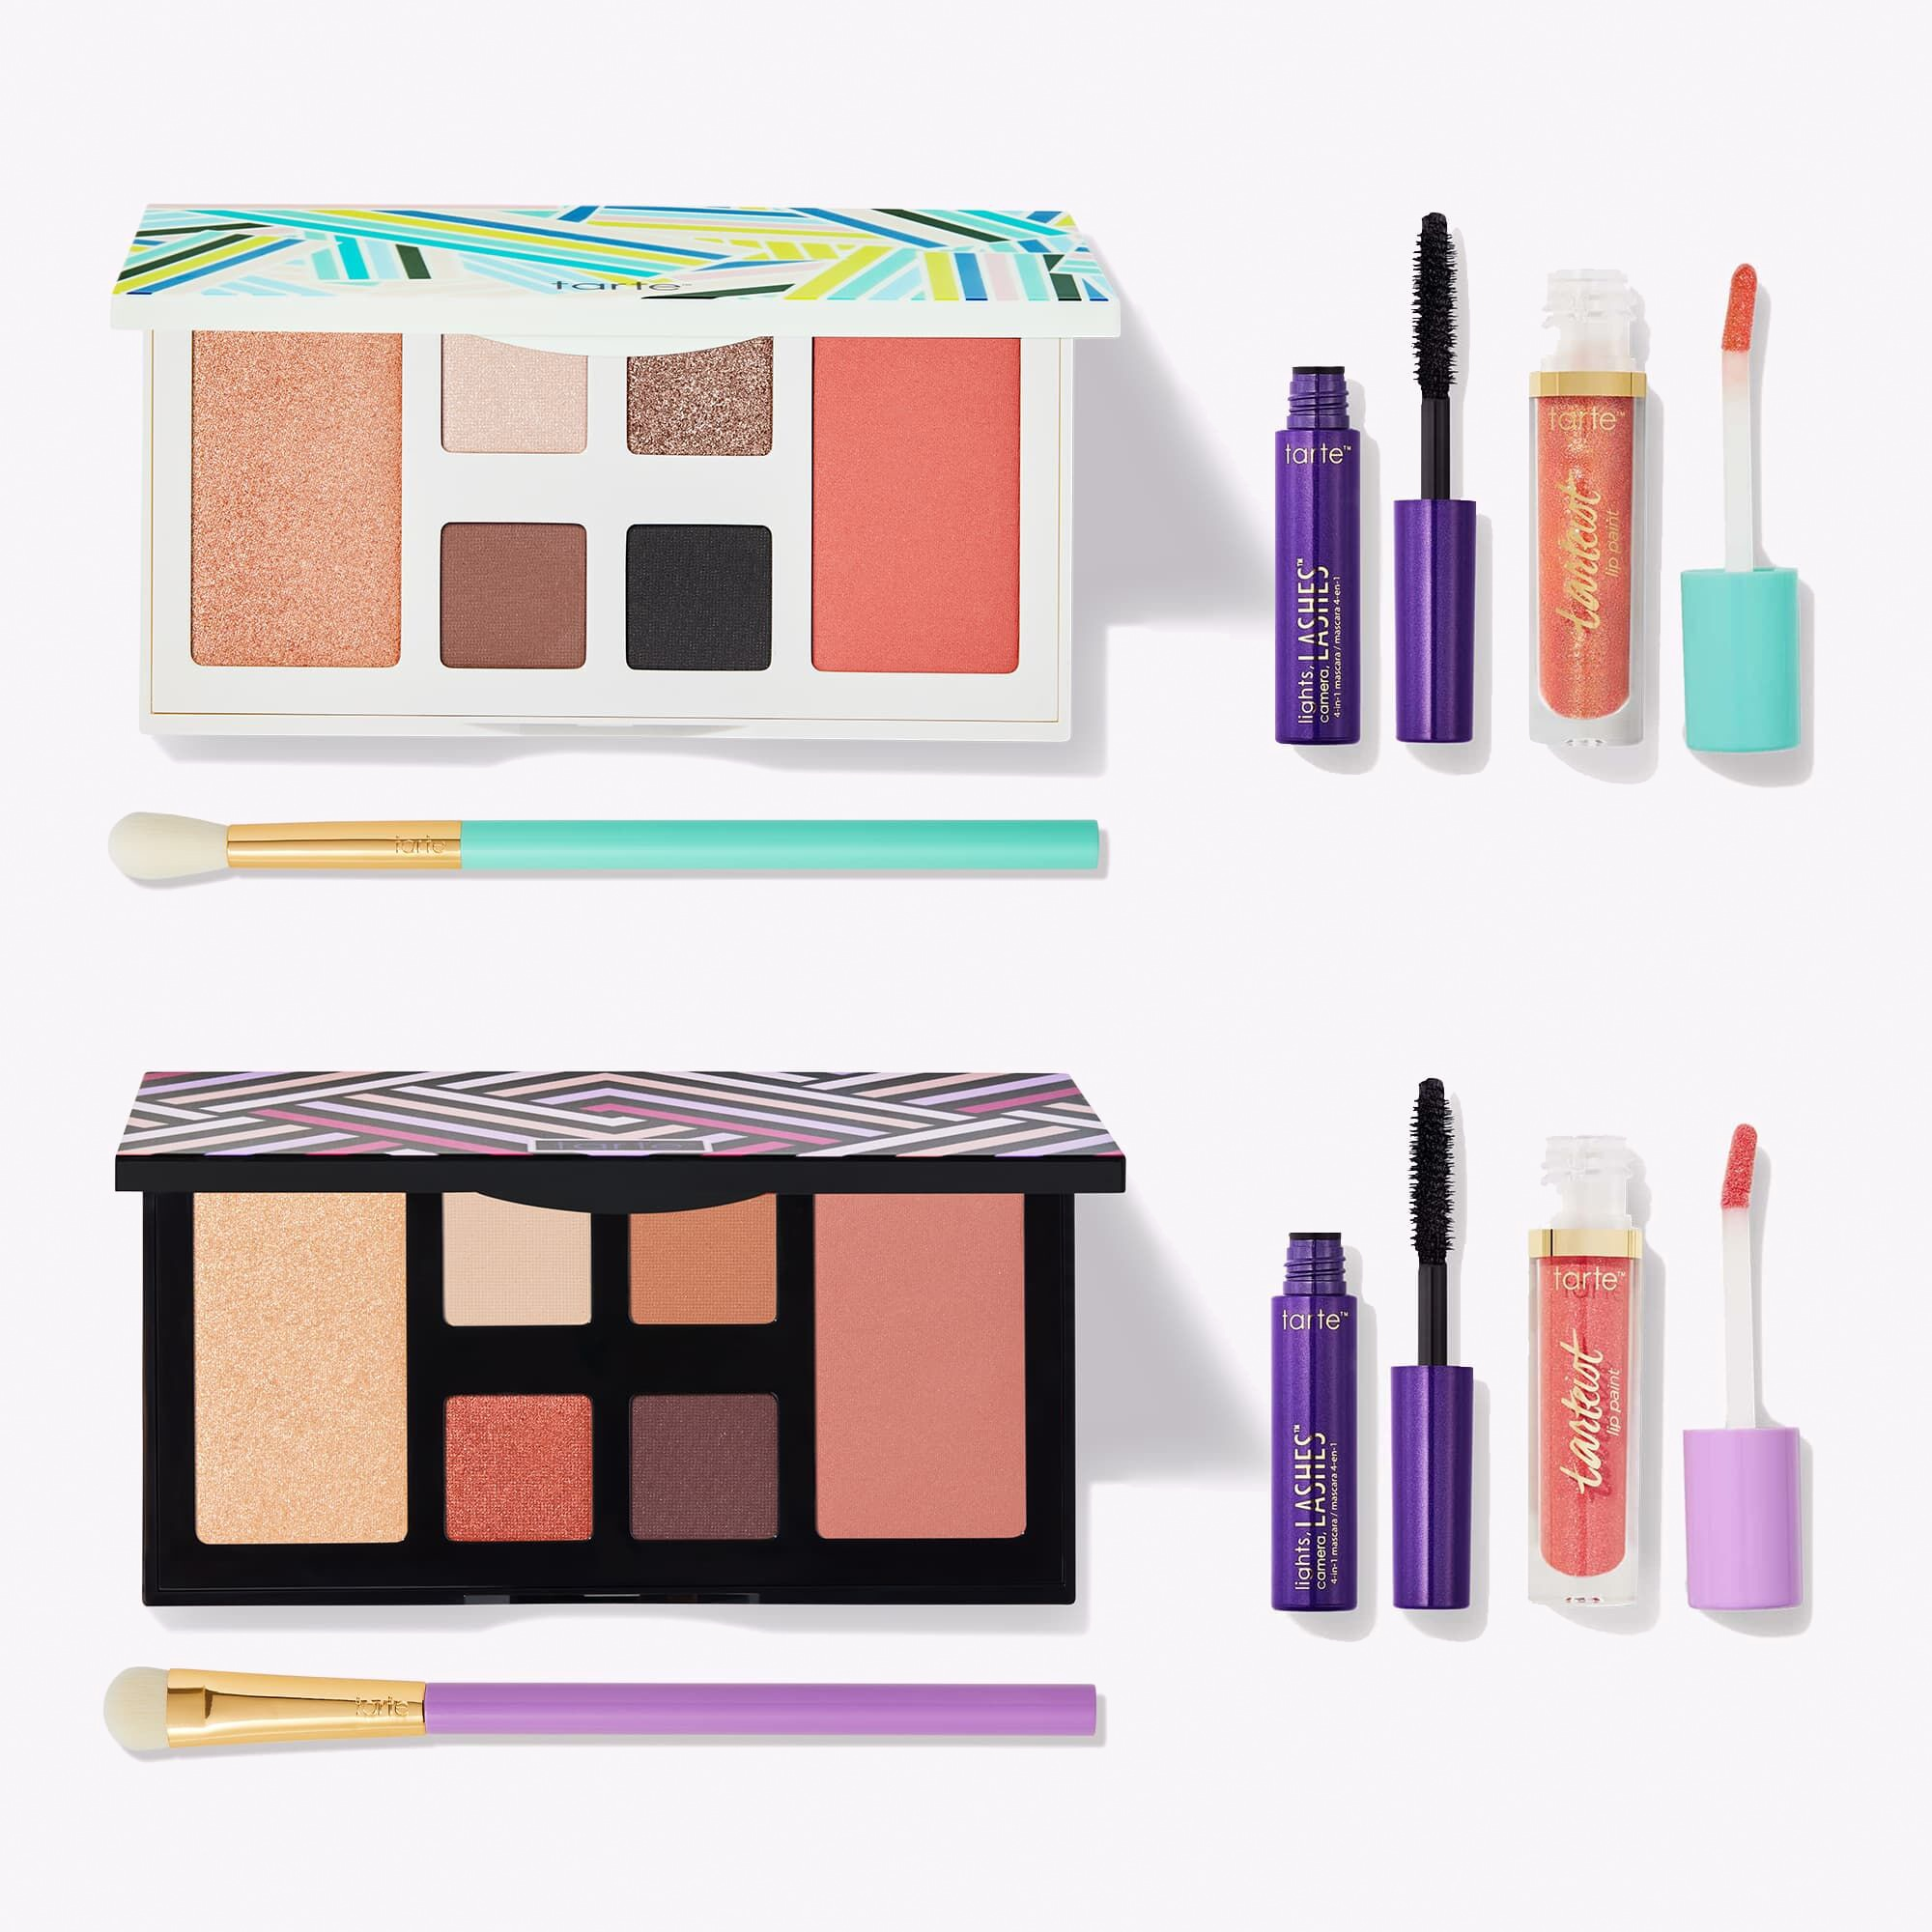 Gift & Glam Collector's Set by Tarte #14